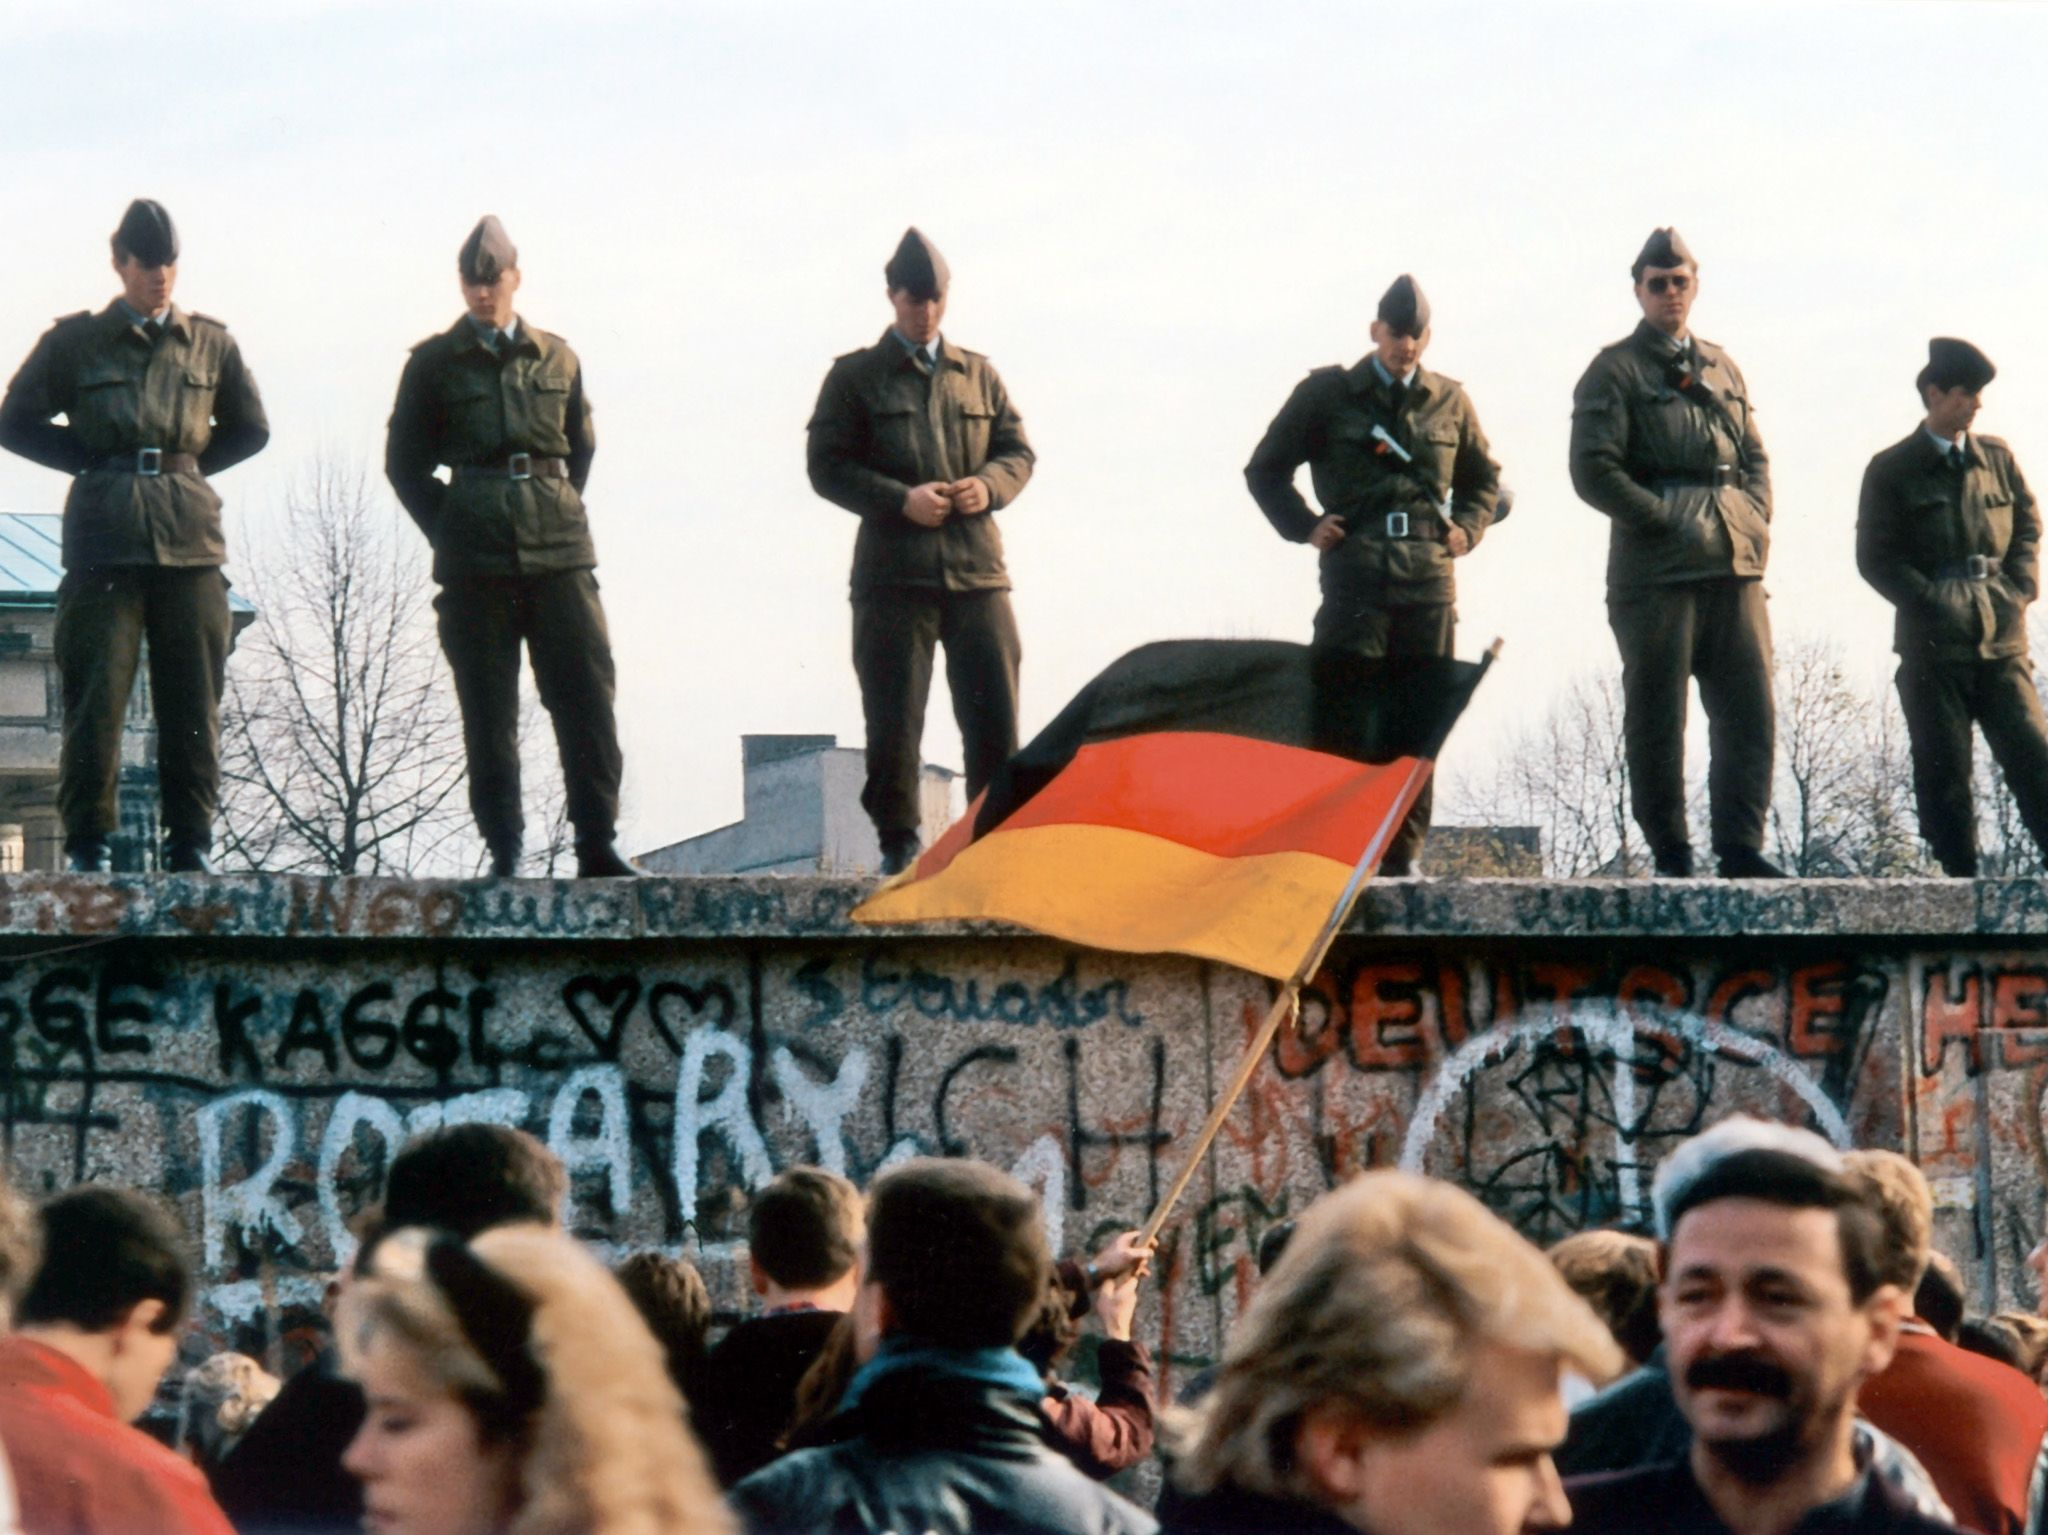 Soldiers on the Berlin Wall. This image is from Decades Remixed: The '80s Greatest. [Foto del giorno - ottobre 2018]